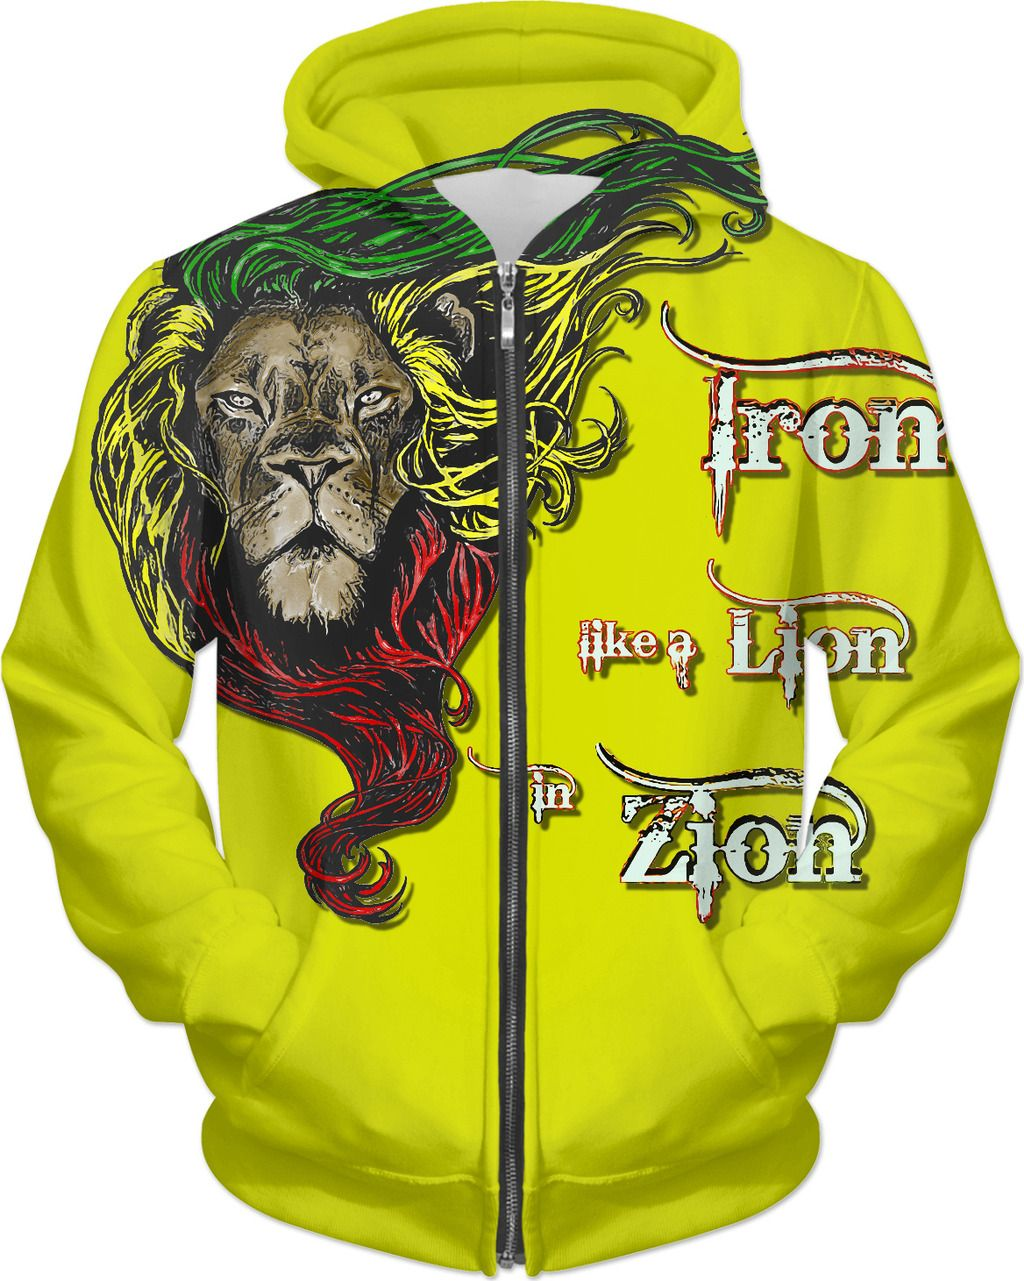 fe16487049bba Iron like a Lion, in Zion. Yellow rasta hoodie, Reggae music themed ...